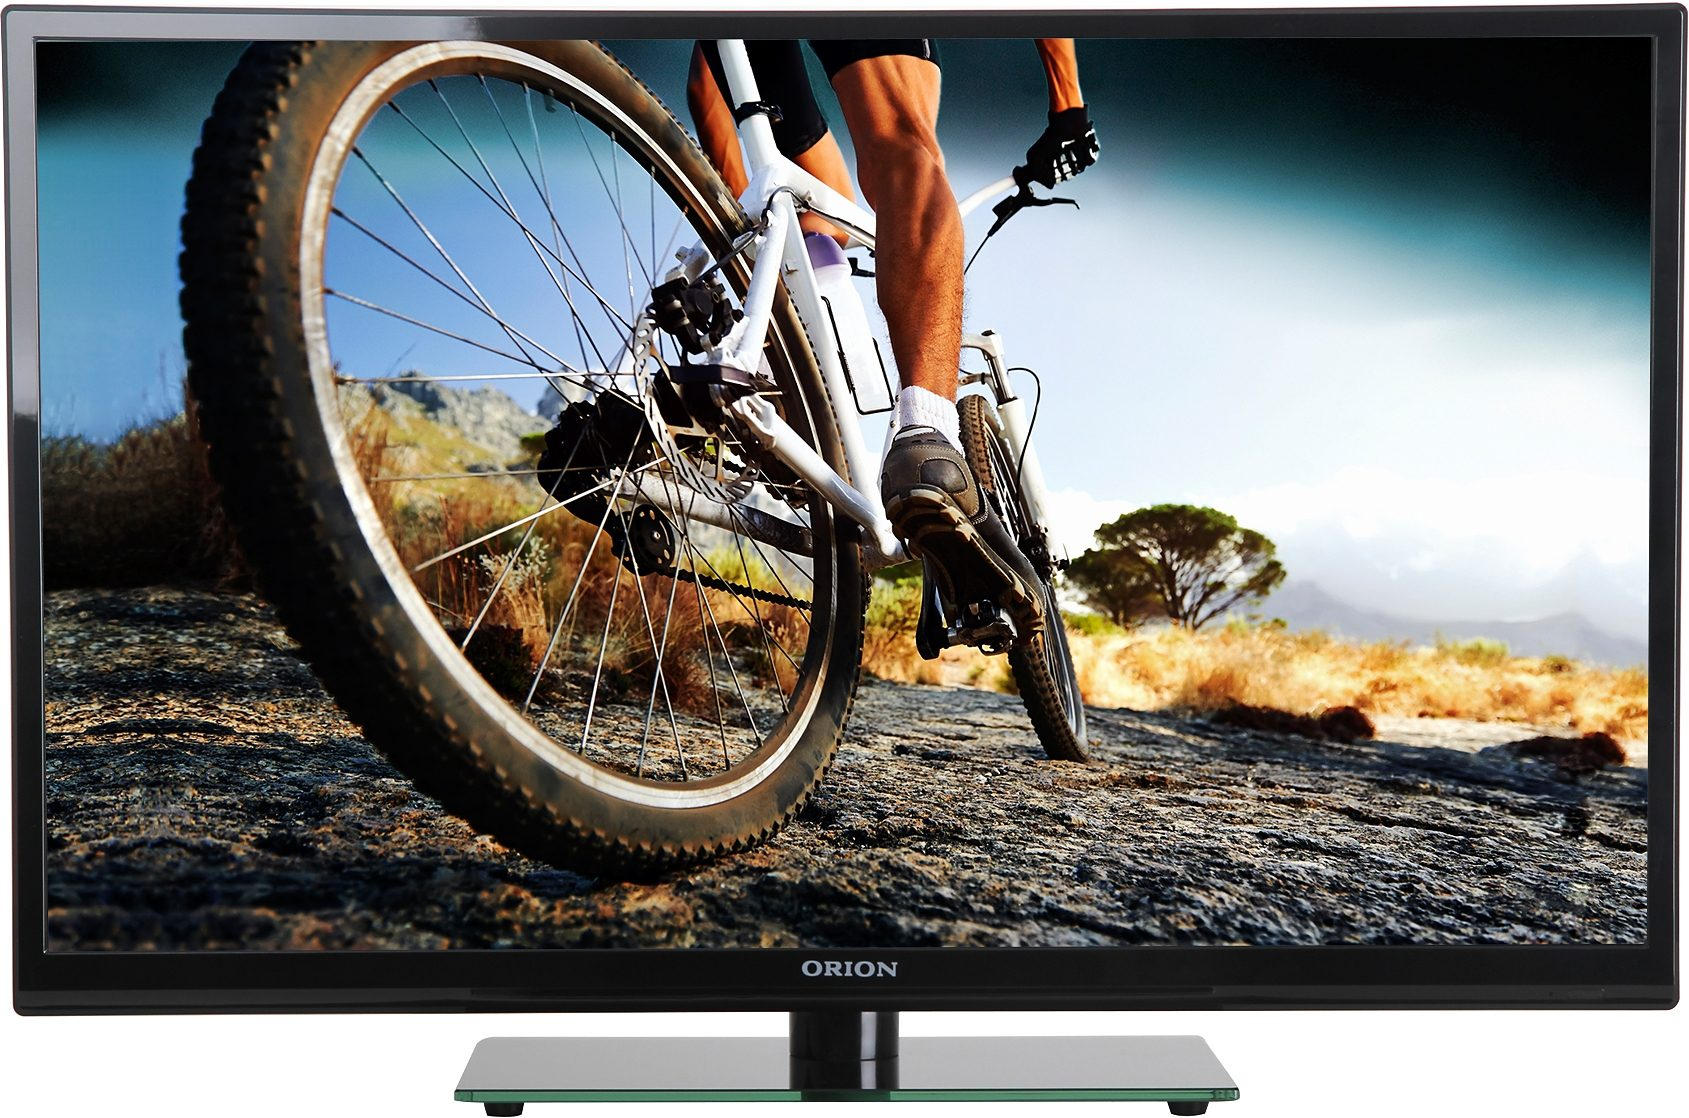 Orion CLB32B772S , LED Fernseher, 80 cm (32 Zoll), HD-ready 720p